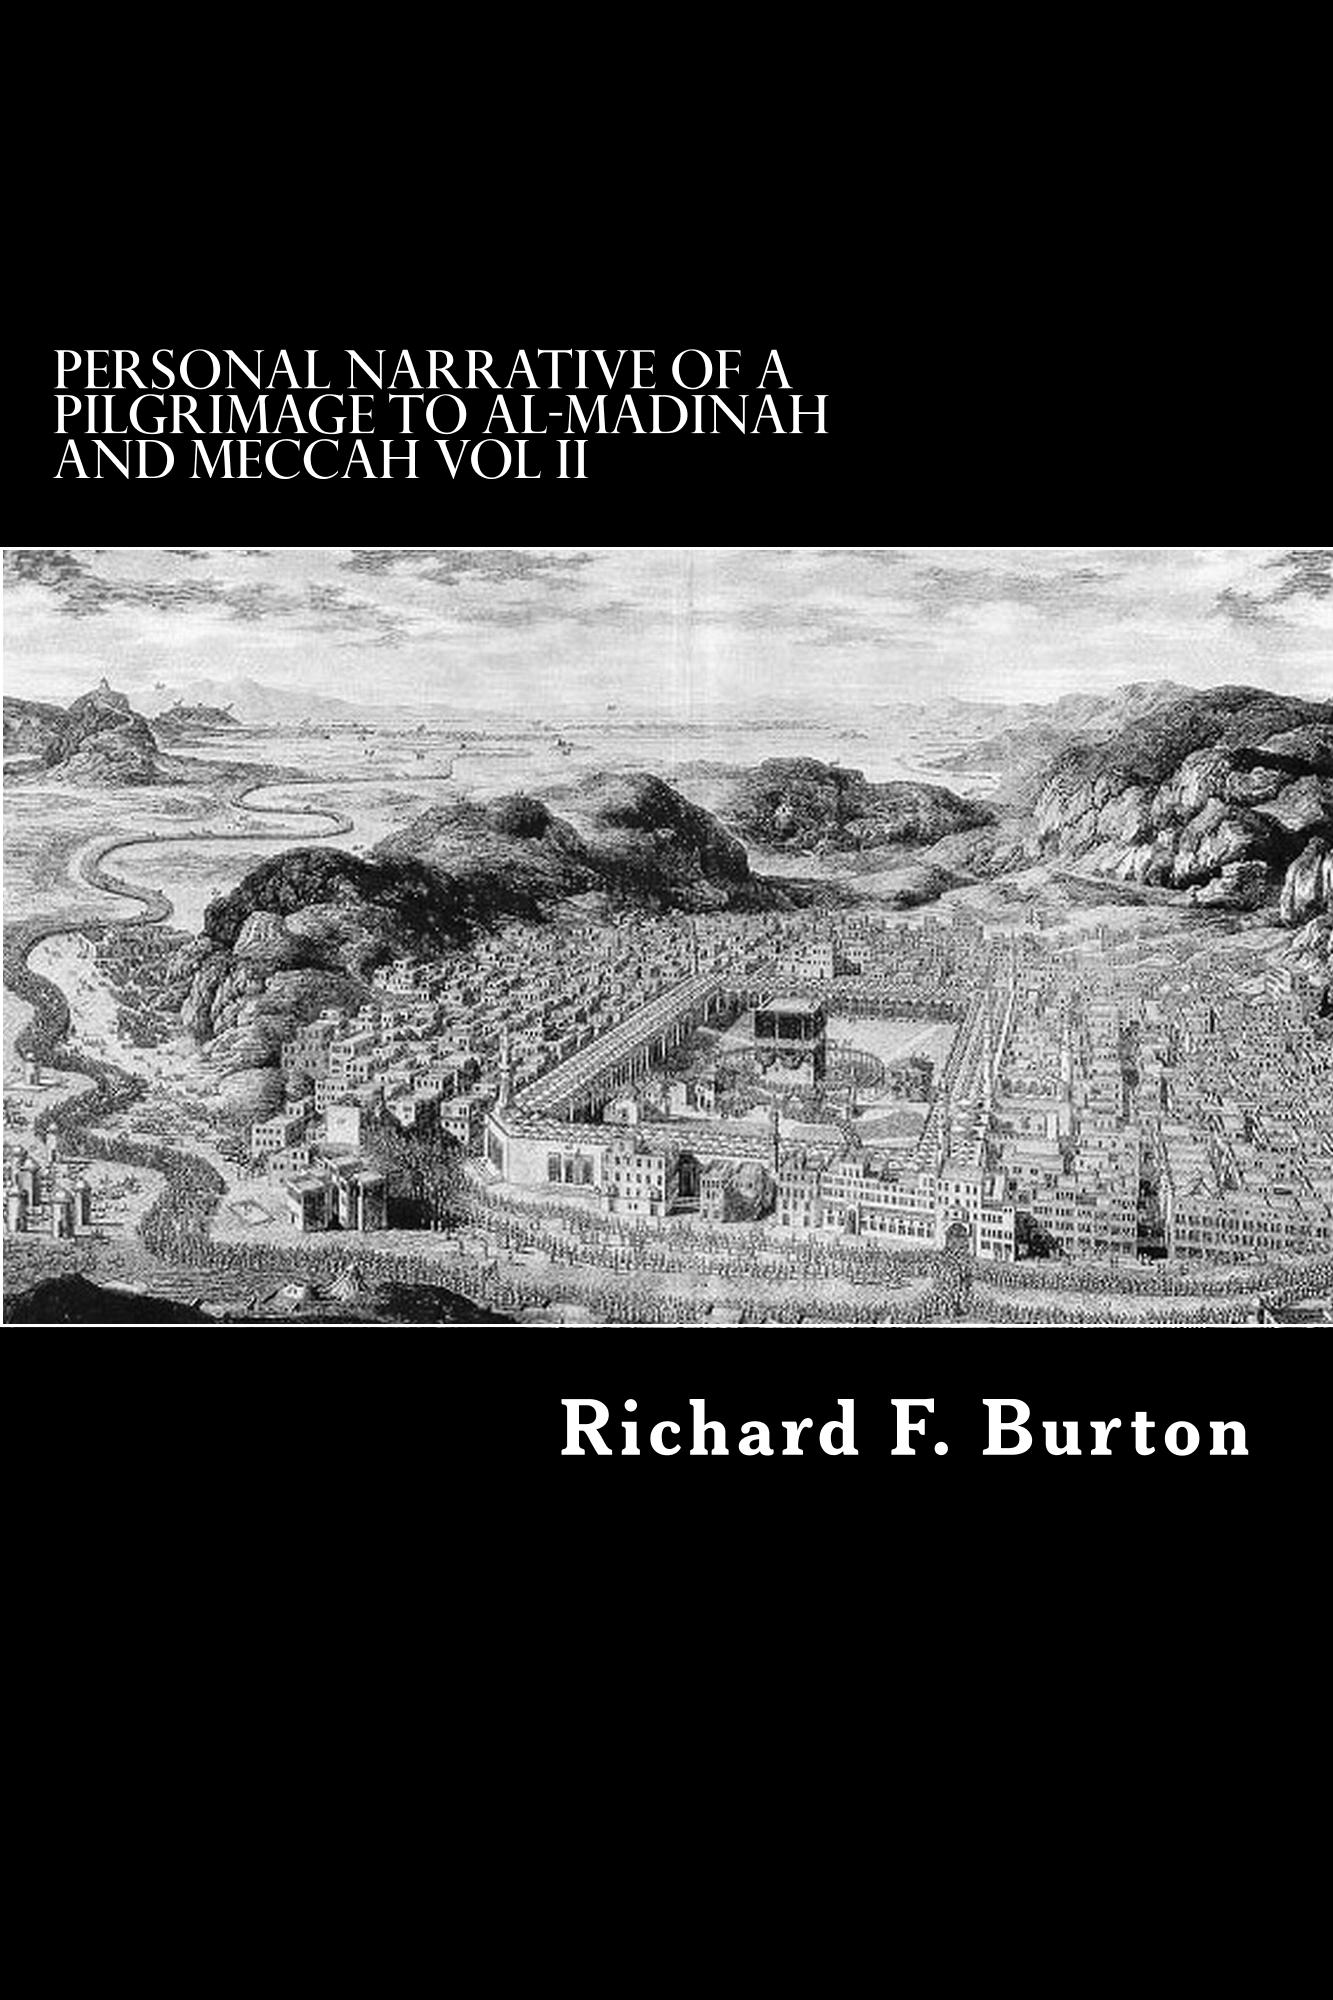 Personal Narrative of a Pilgrimage to Al-Madinah and Meccah By: Richard F. Burton